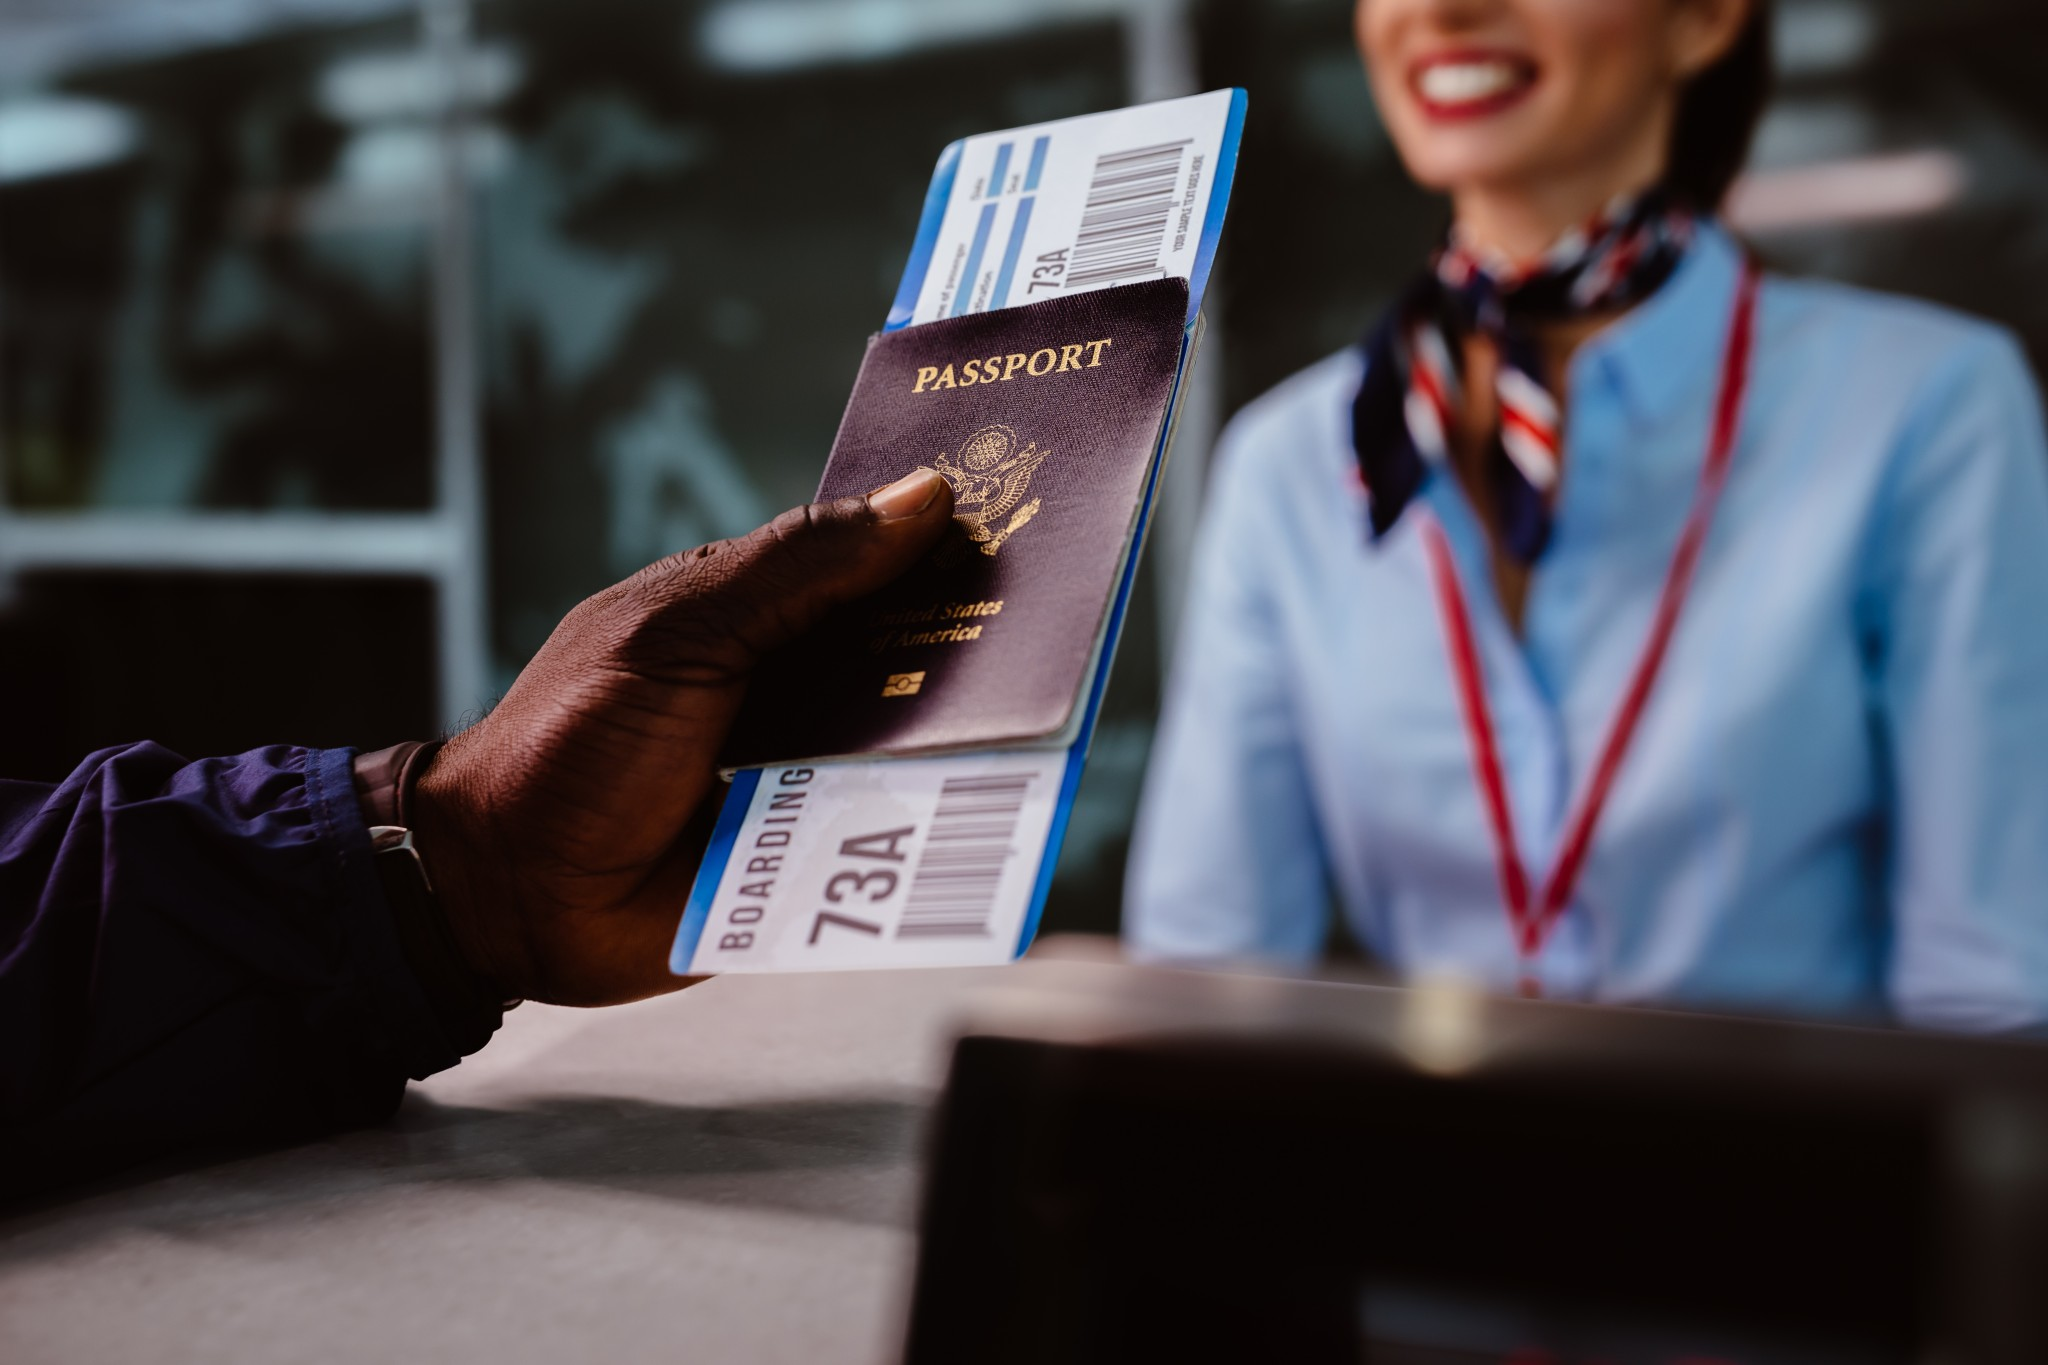 Residents in some U.S. states will need a passport for all flights because of the Real ID Act.